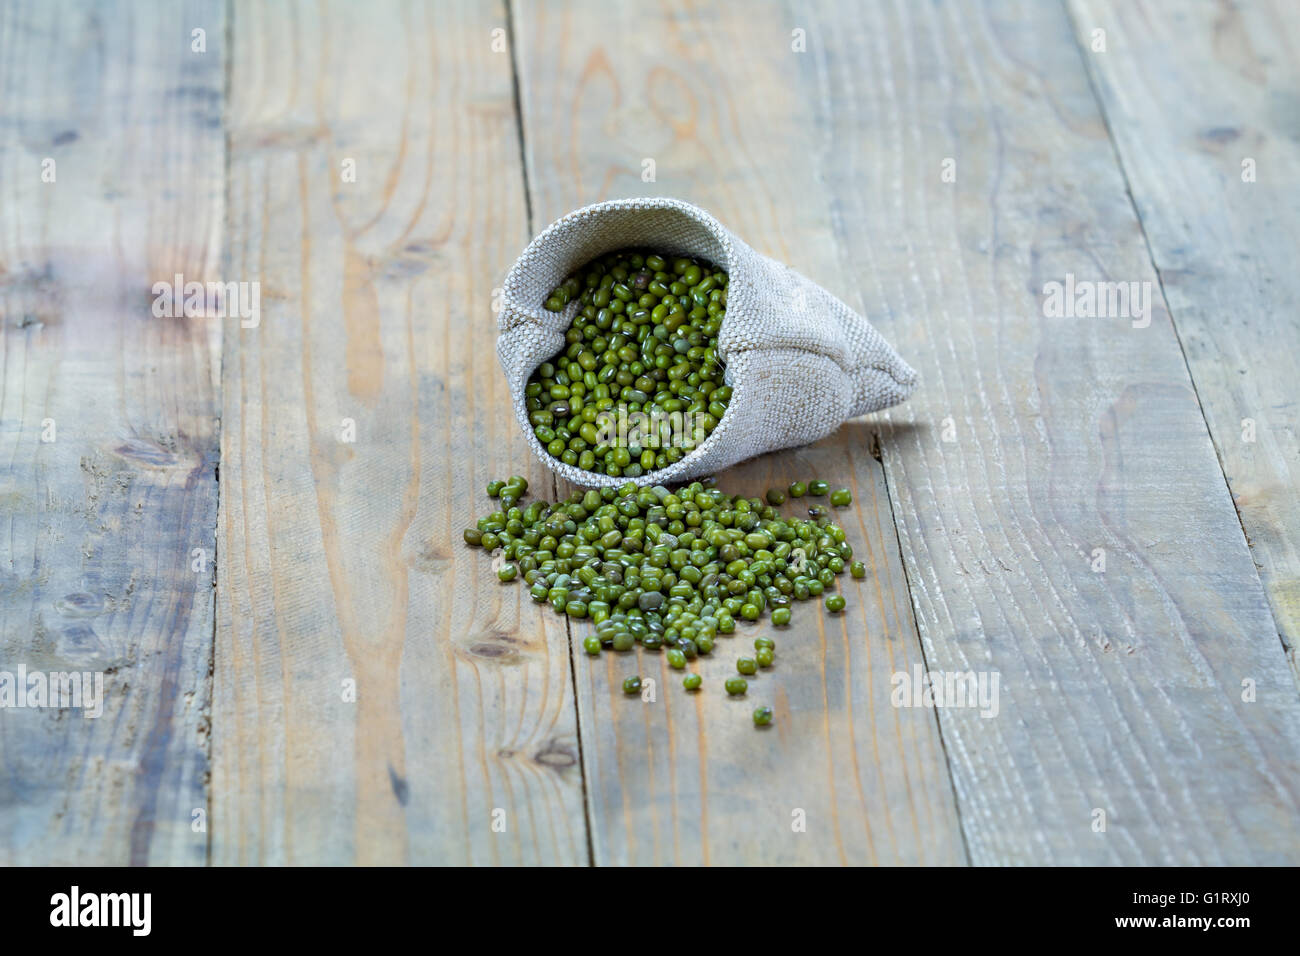 Mung beans in sack on vintage wooden boards - Stock Image